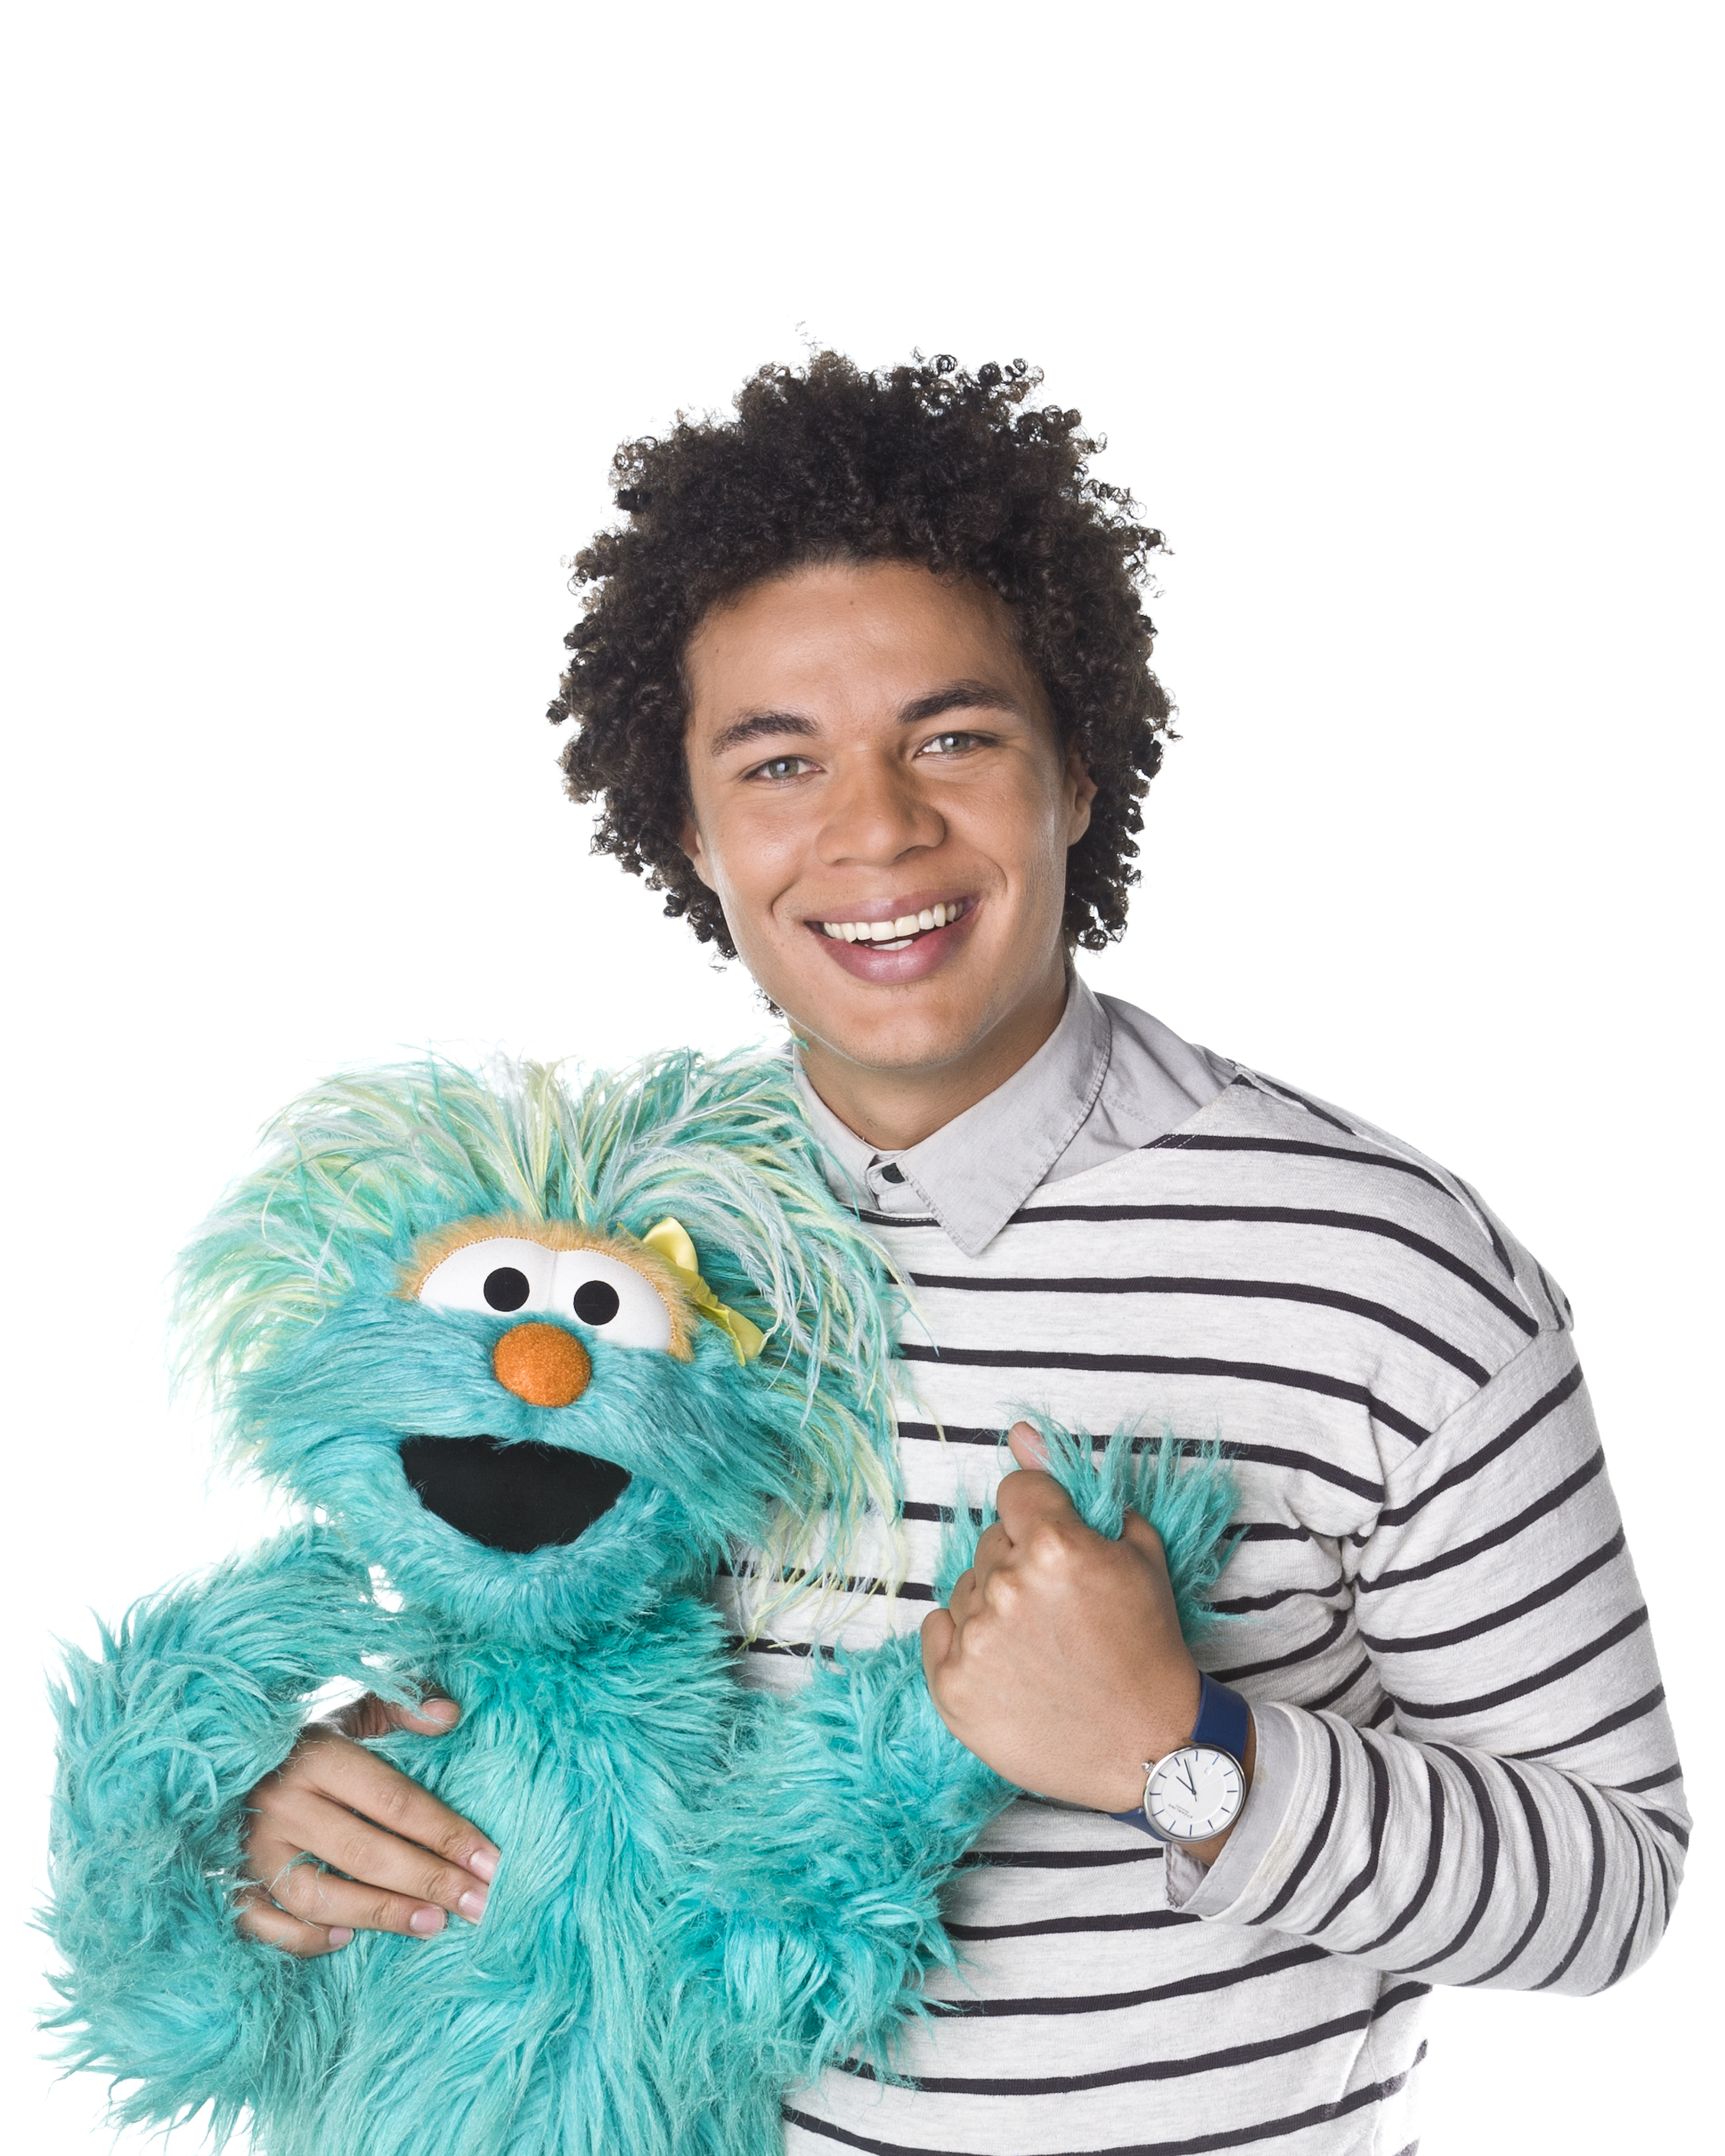 Introducing the new Sesame Street Character :: Mando!